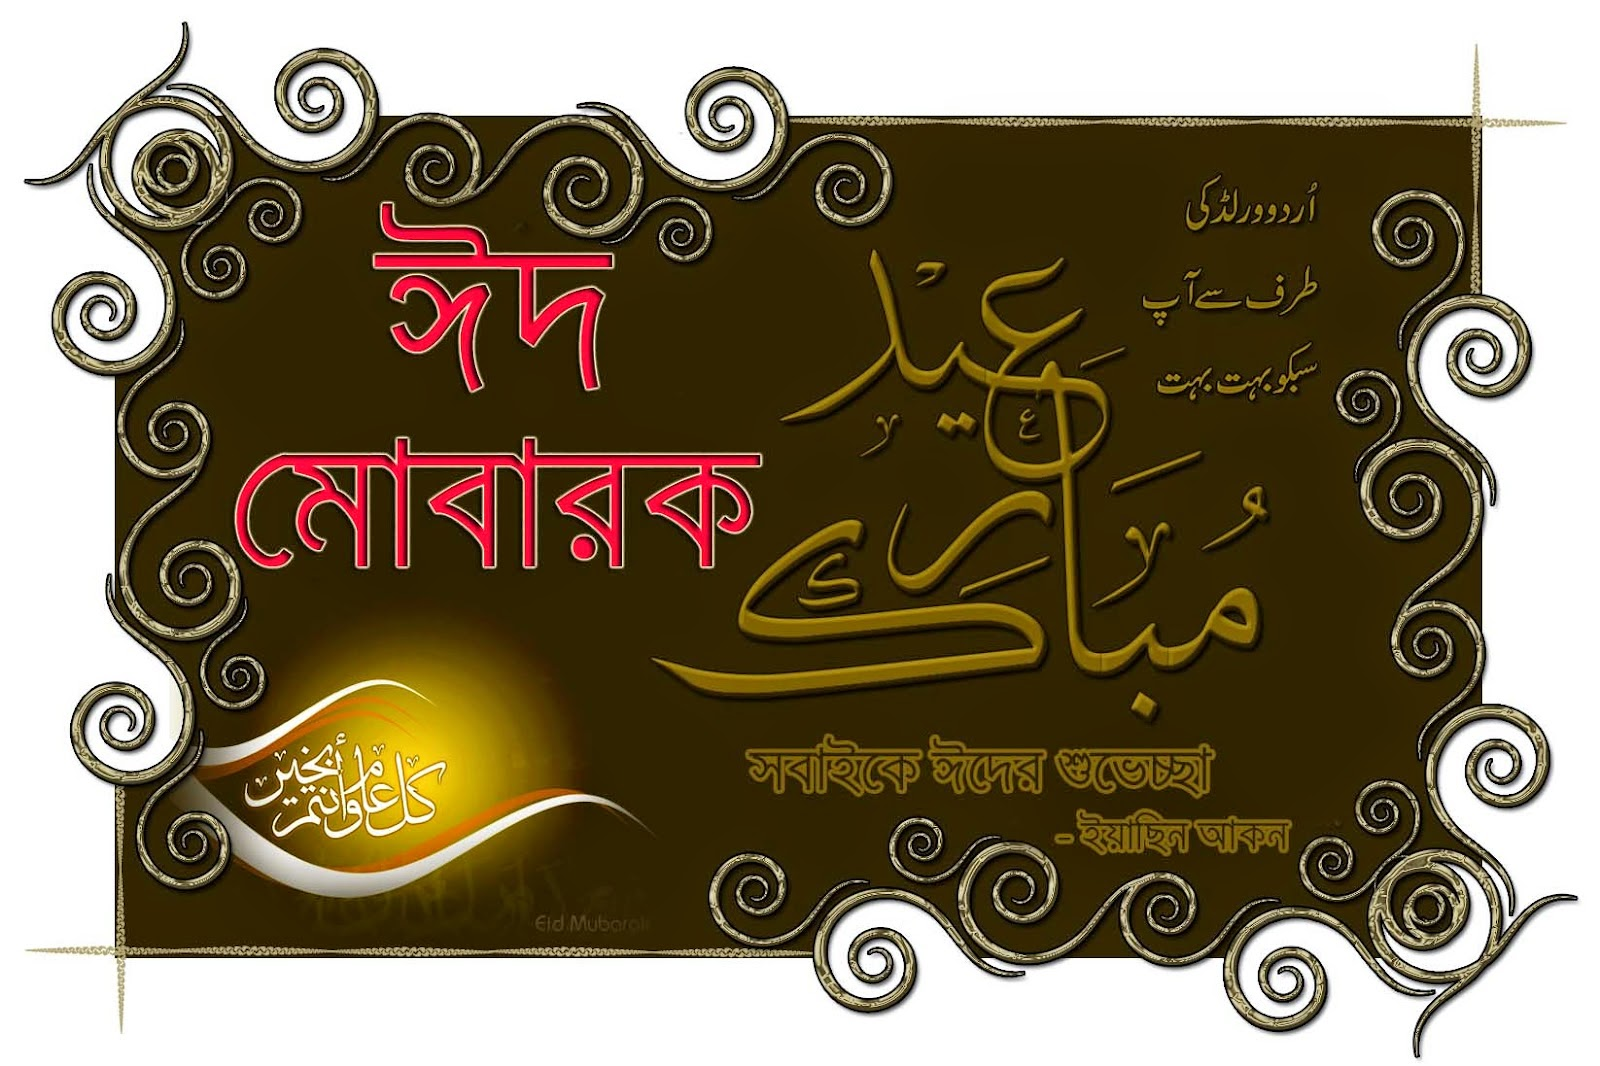 Download Bangla Eid Al-Fitr Greeting - Bangla%2BEid%2B%2Bgreeting%2Bcard%2B(20)  Graphic_348674 .jpg